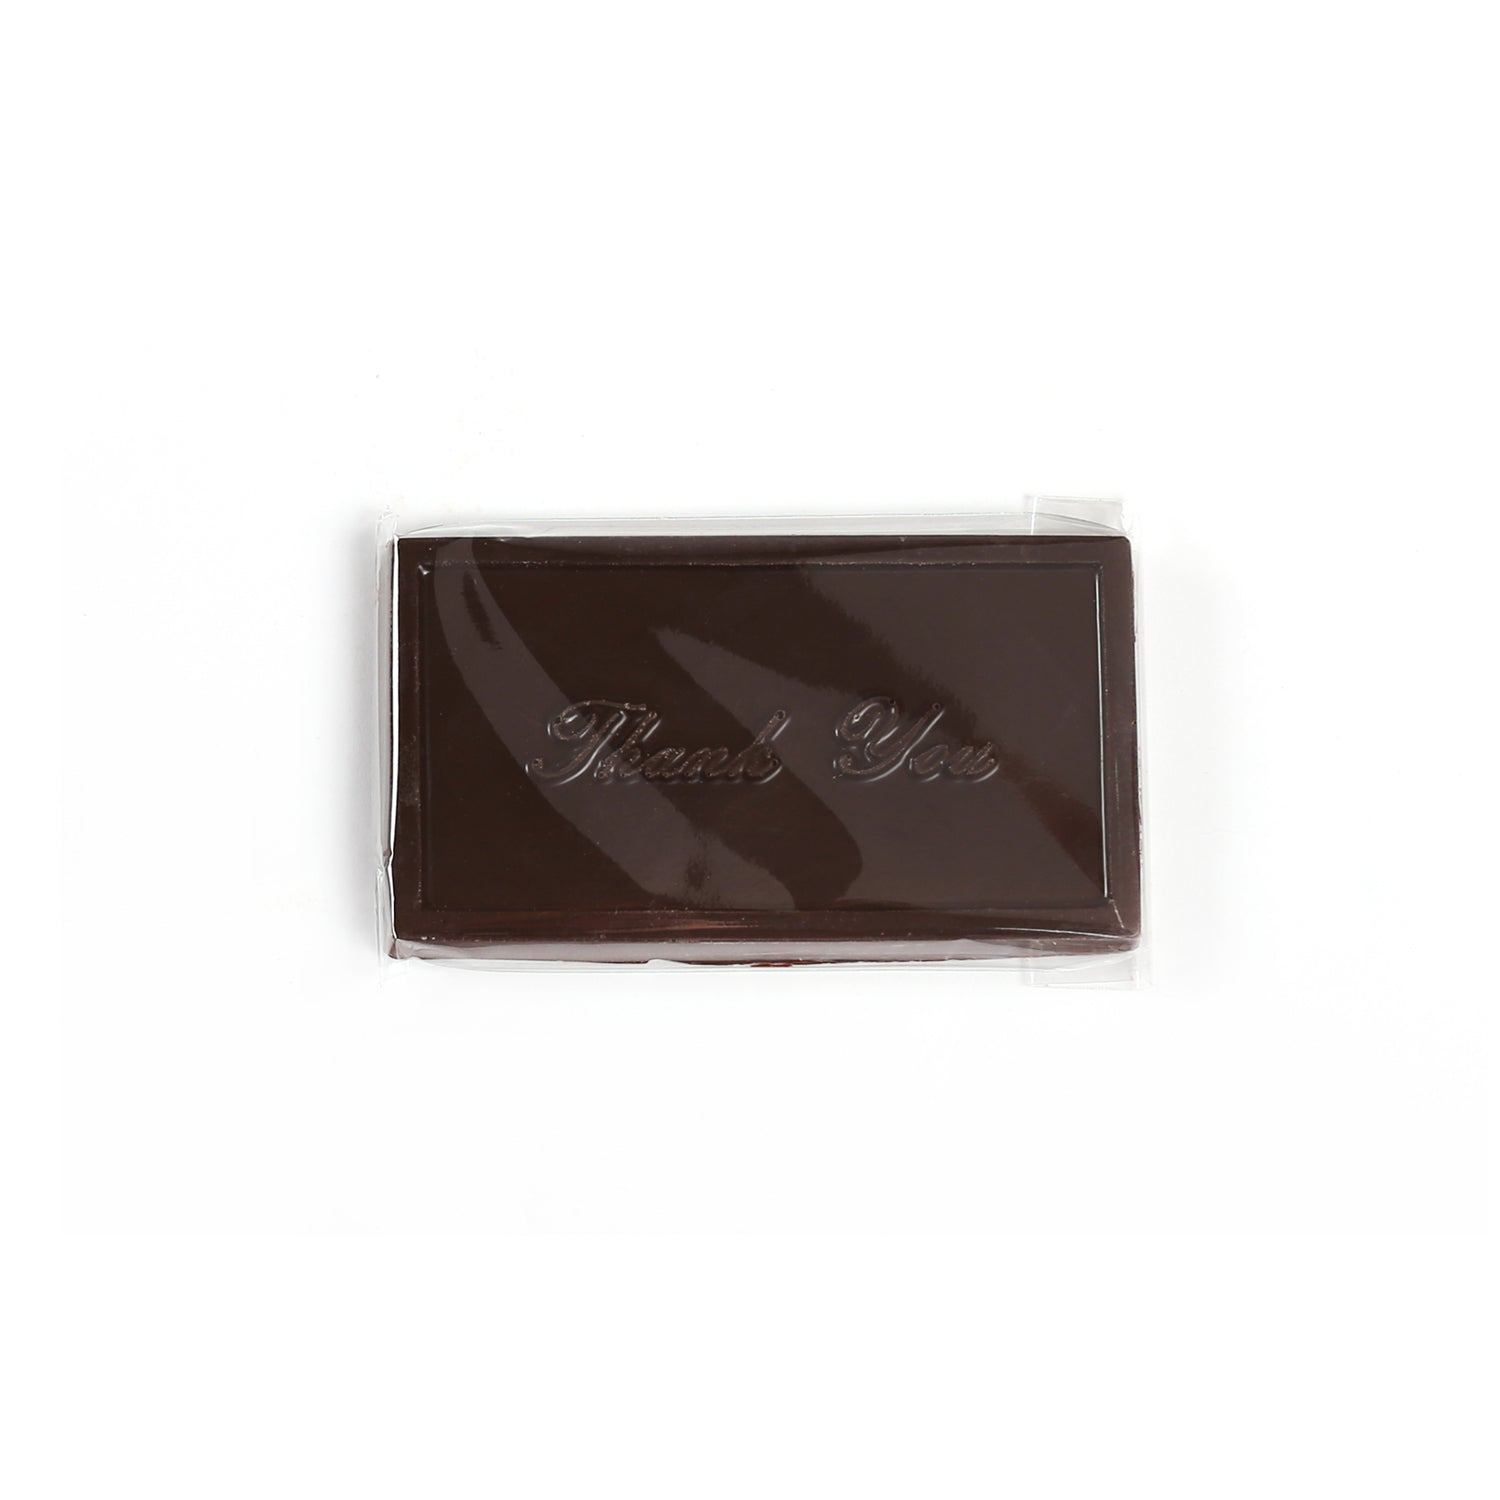 Product photo of dark chocolate thank you bar